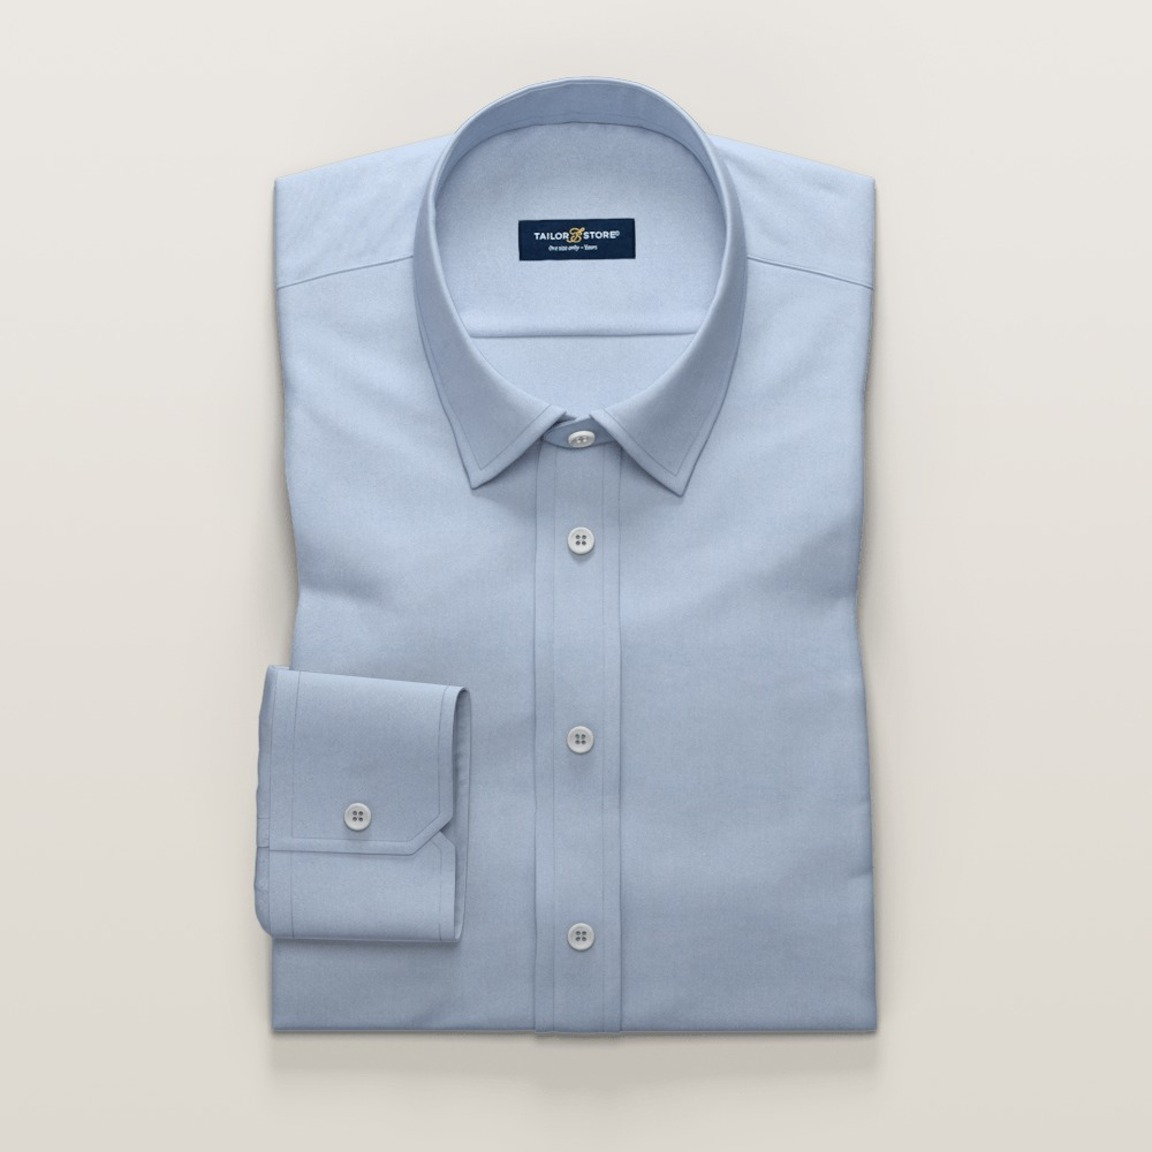 Non Iron business shirt in light blue